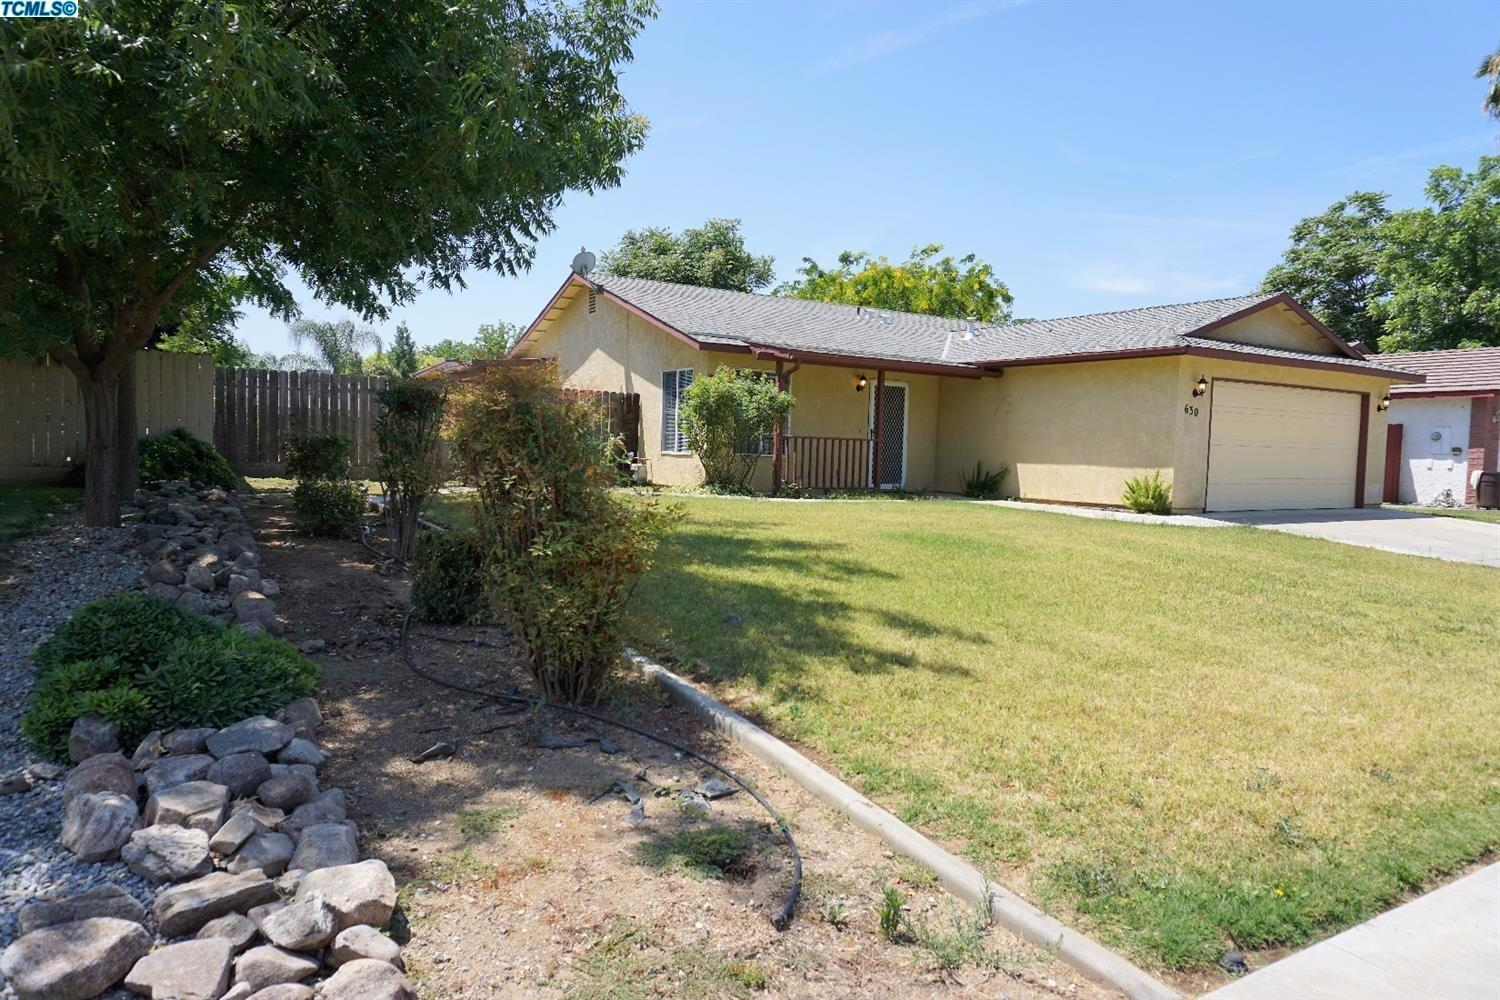 630 birdsong ct exeter ca 93221 recently sold trulia